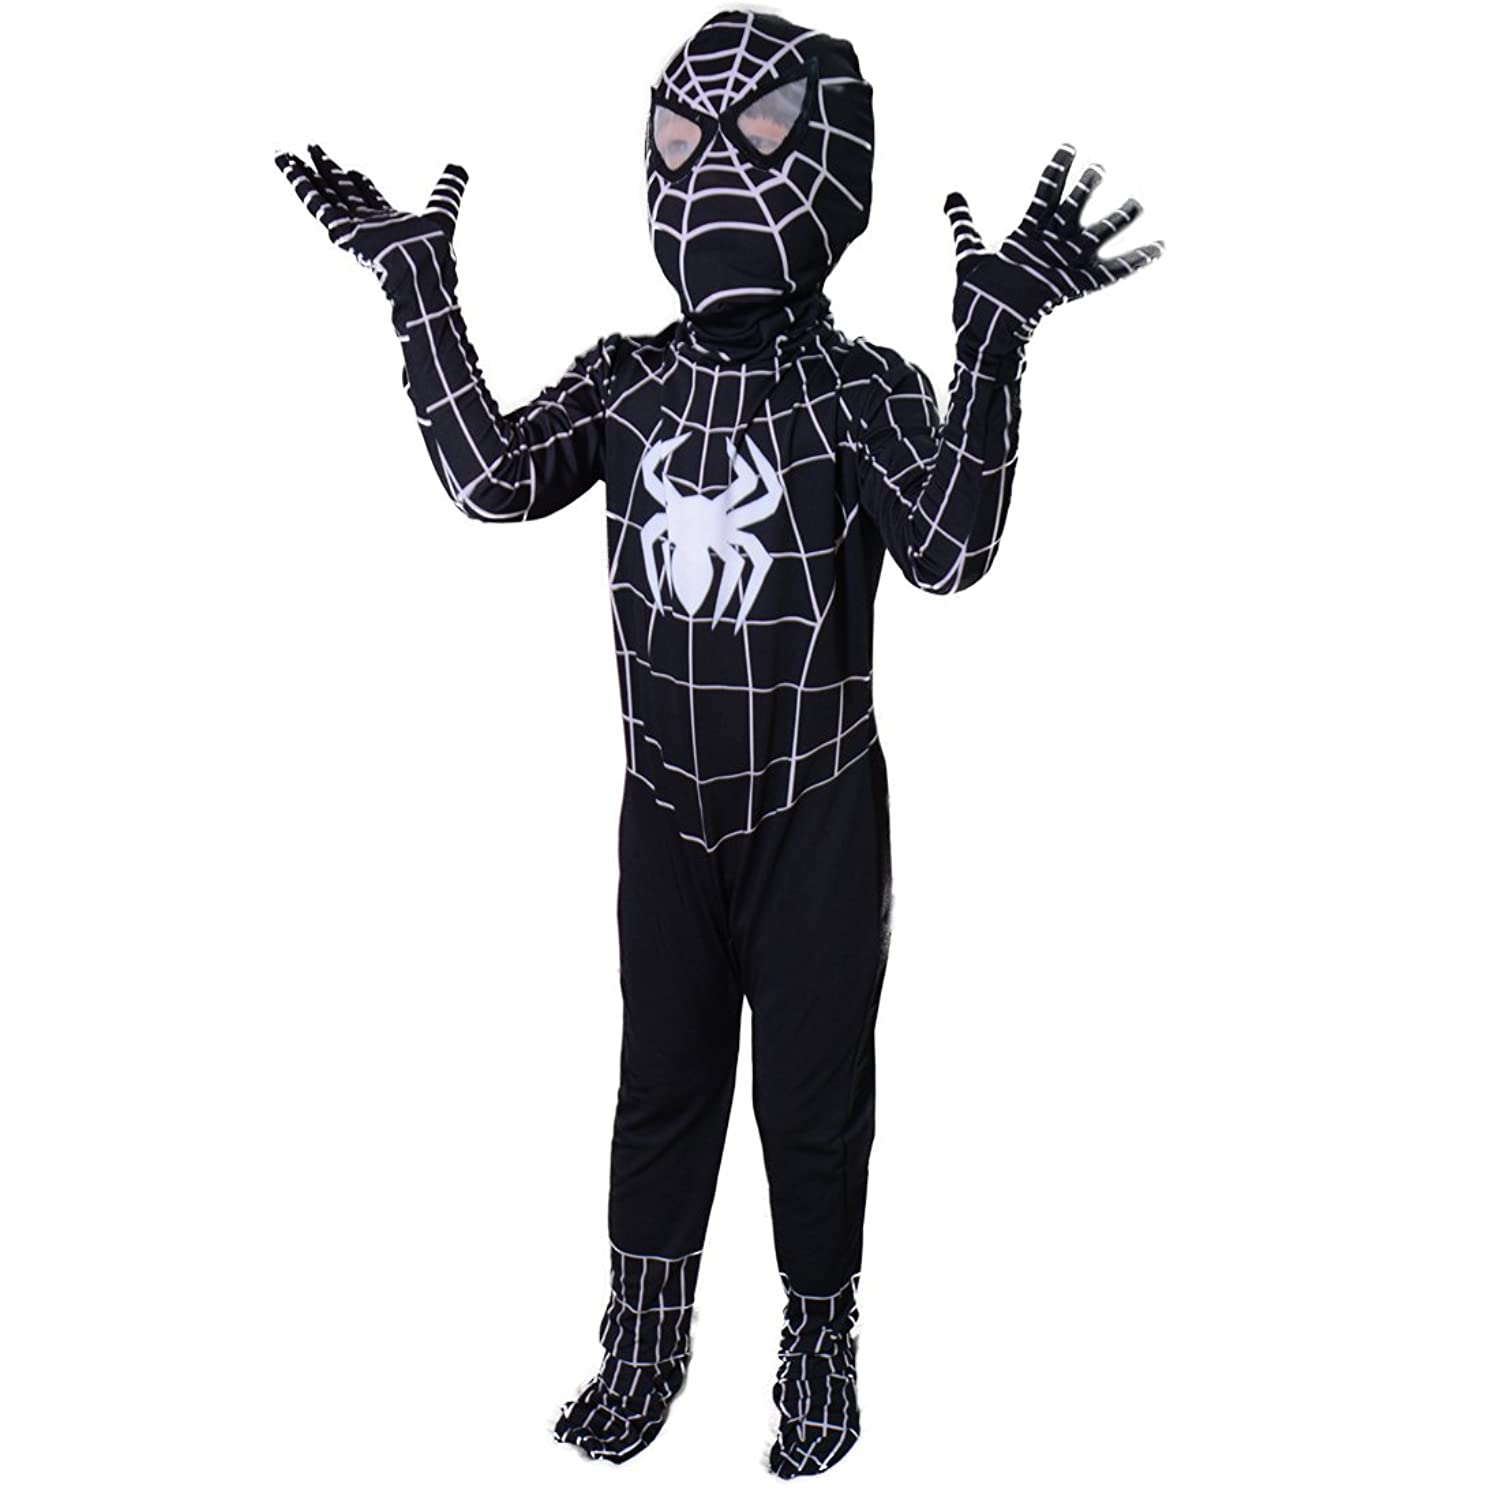 Amazon.com Boys Venom Black Spiderman Costume Kids Superhero Cosplay Spandex Bodysuit Clothing  sc 1 st  Amazon.com & Amazon.com: Boys Venom Black Spiderman Costume Kids Superhero ...